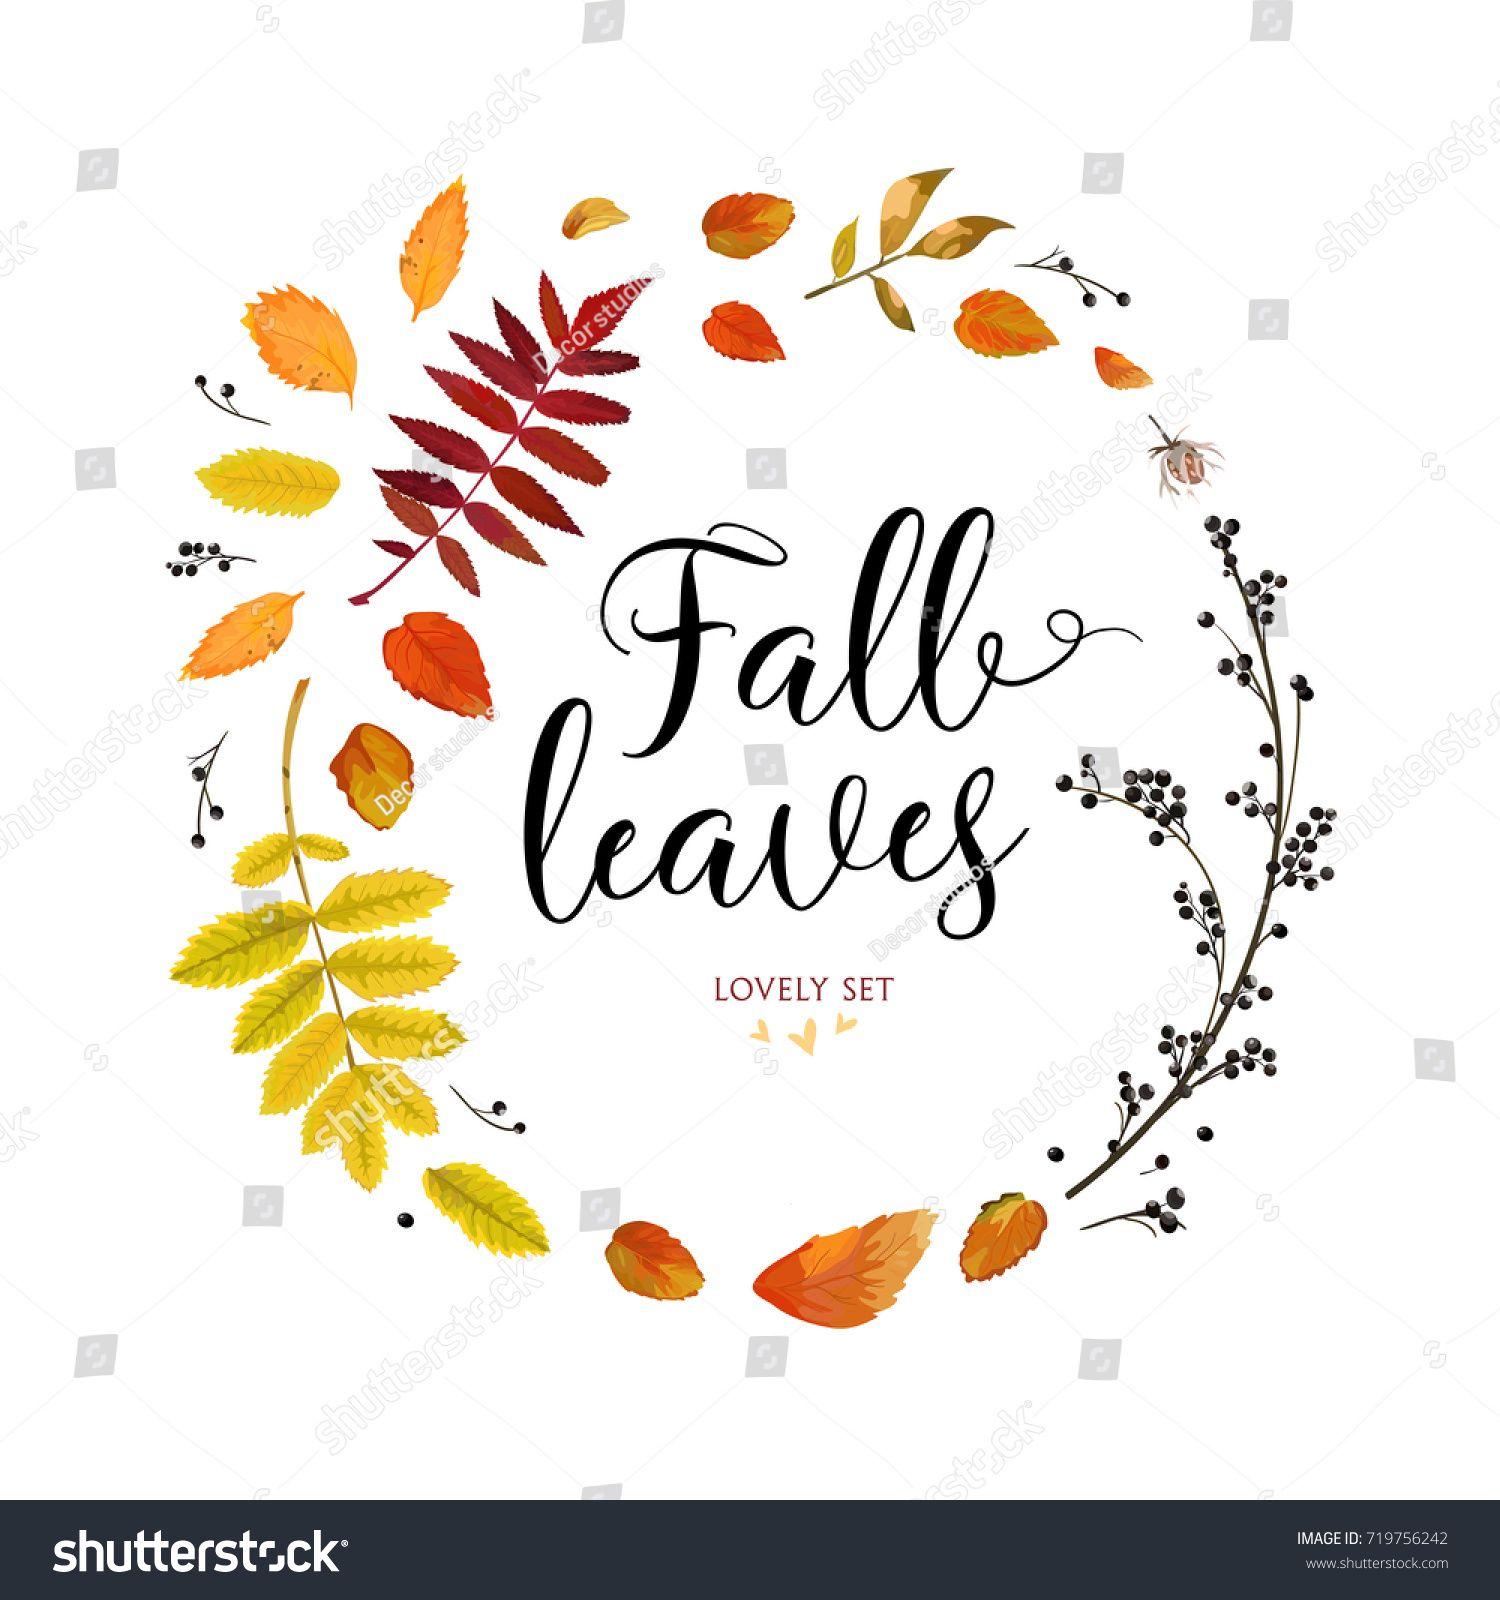 Fall Leaves Design